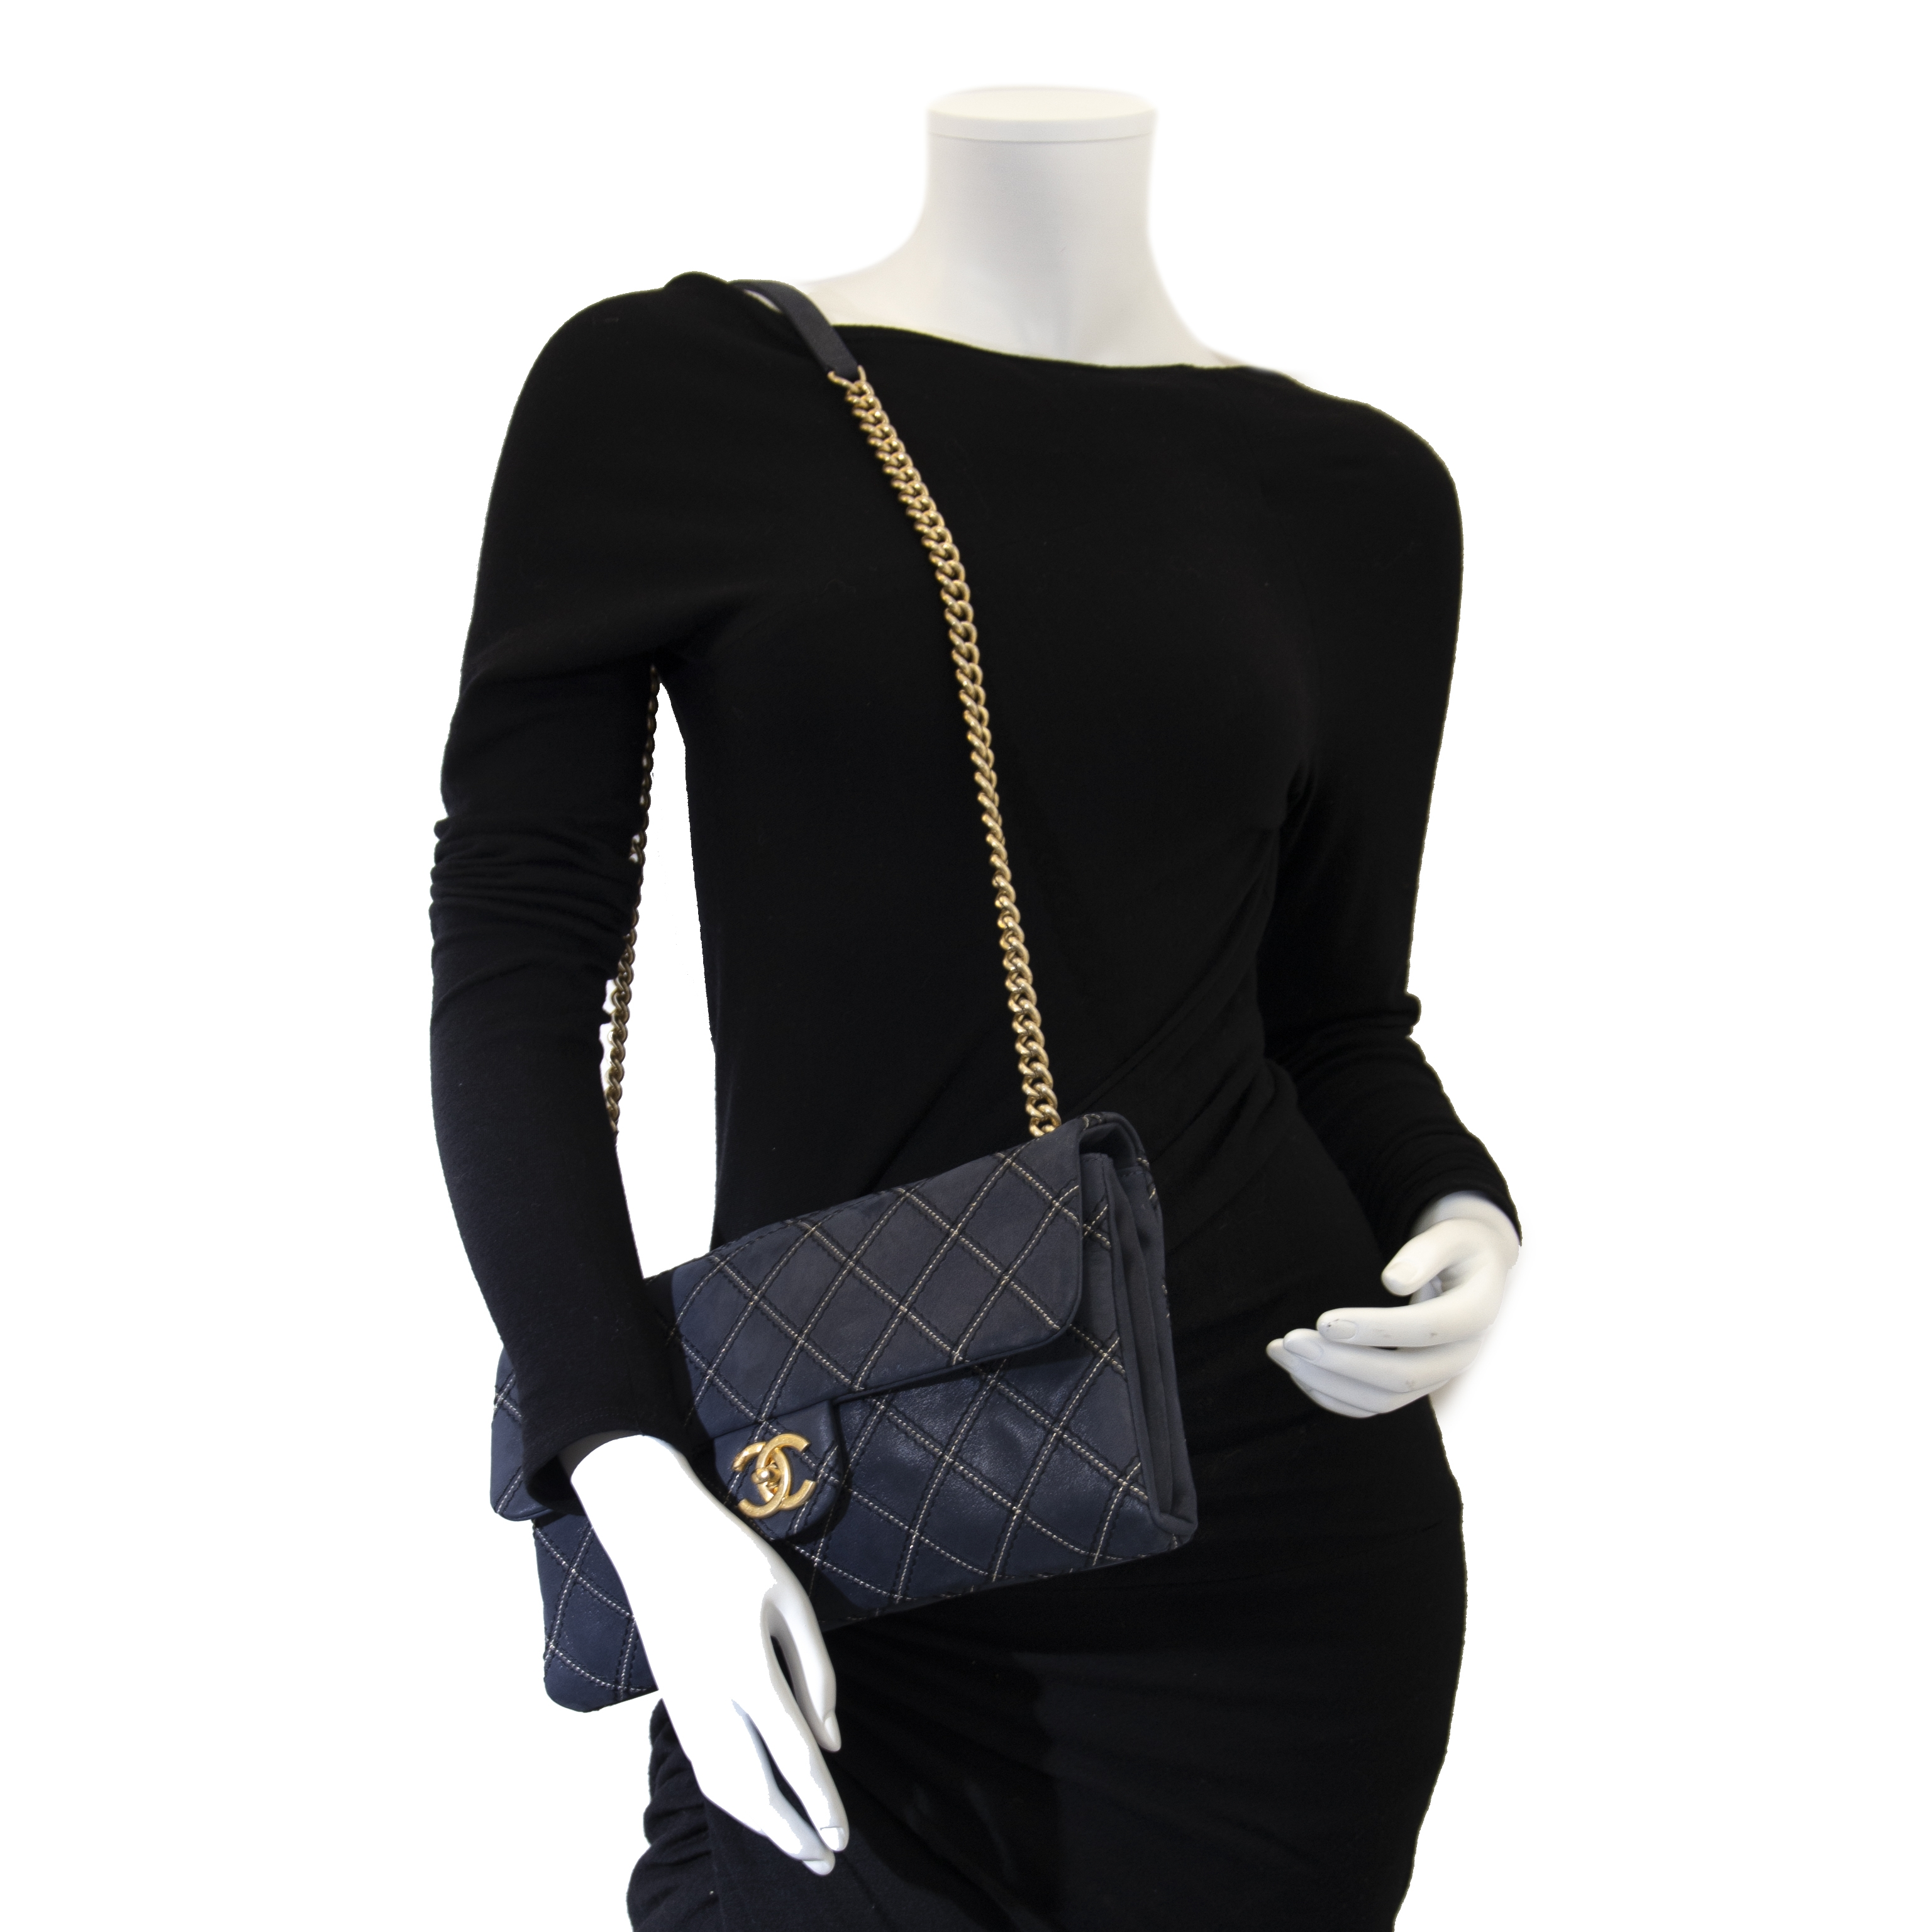 90999ad009f ... Chanel Dark Blue Flap Bag Buy authentic secondhand Chanel Handbags at  the right price at LabelLov